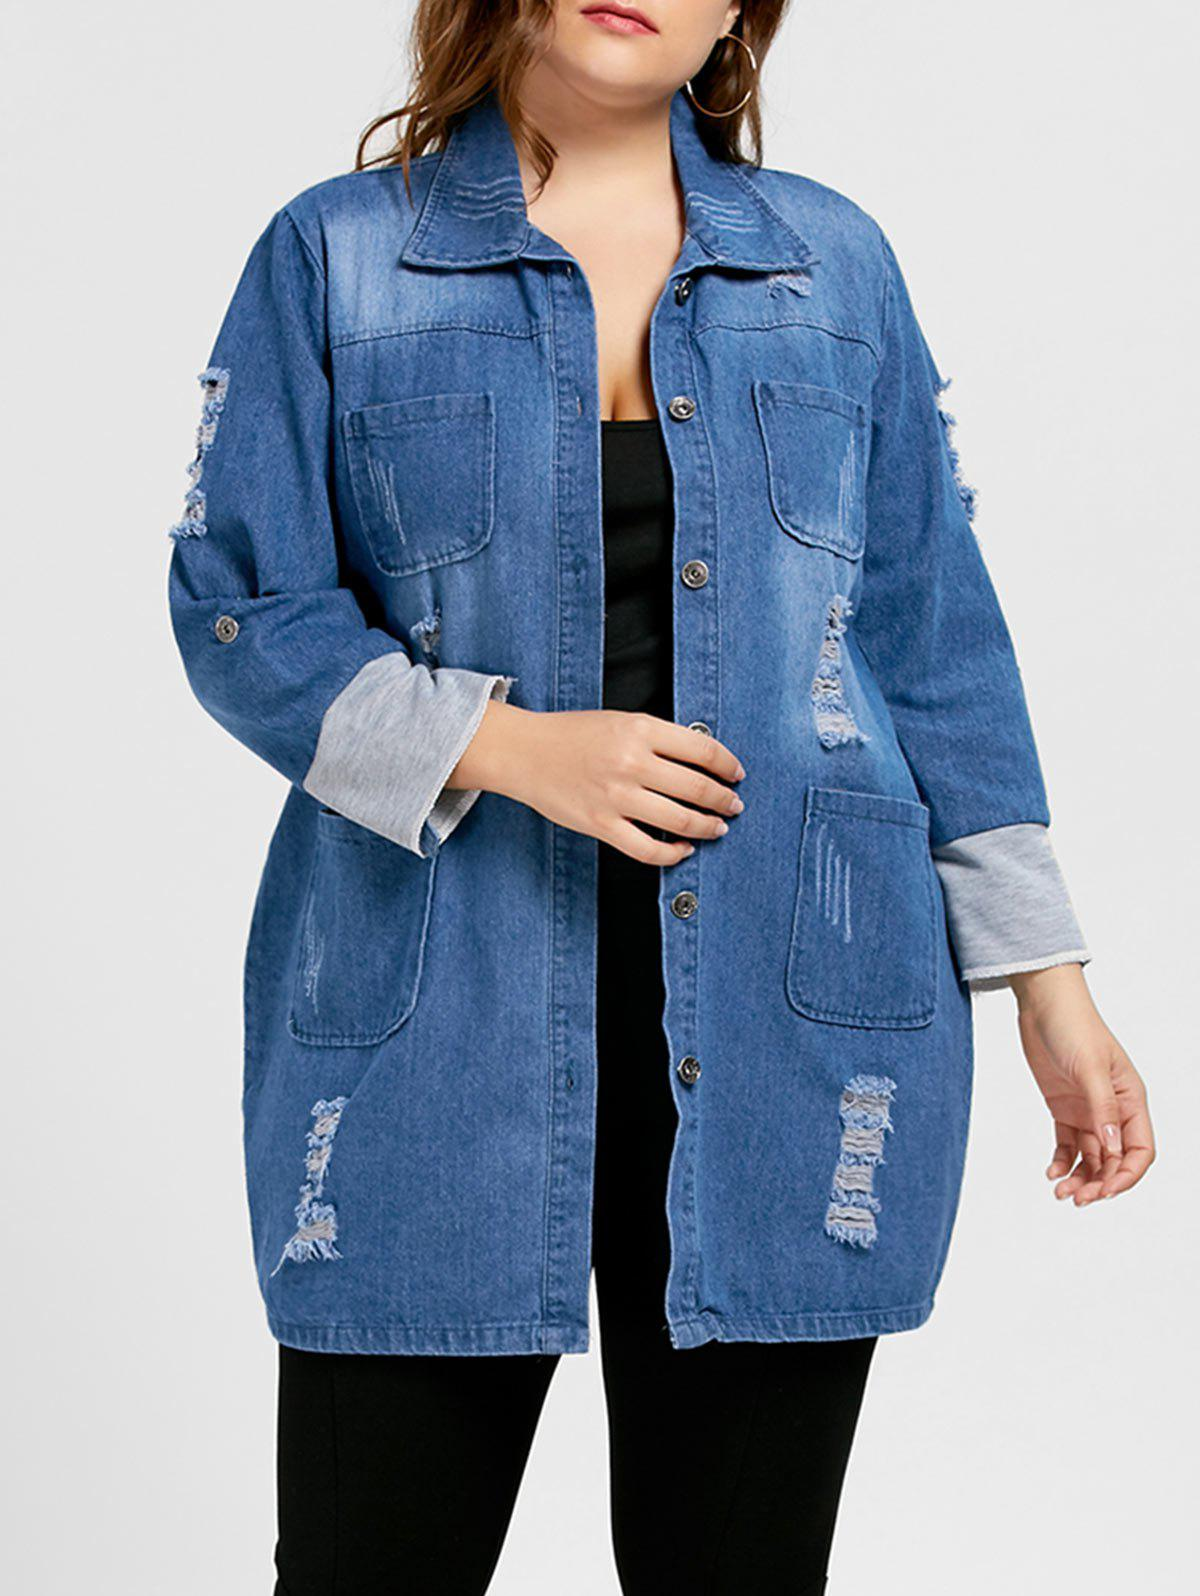 Ripped Denim Plus Size Longline CoatWOMEN<br><br>Size: 5XL; Color: BLUE; Clothes Type: Jackets; Material: Cotton,Polyester; Type: Wide-waisted; Shirt Length: Long; Sleeve Length: Full; Collar: Turn-down Collar; Pattern Type: Solid; Style: Fashion; Season: Fall; Weight: 0.6550kg; Package Contents: 1 x Coat;